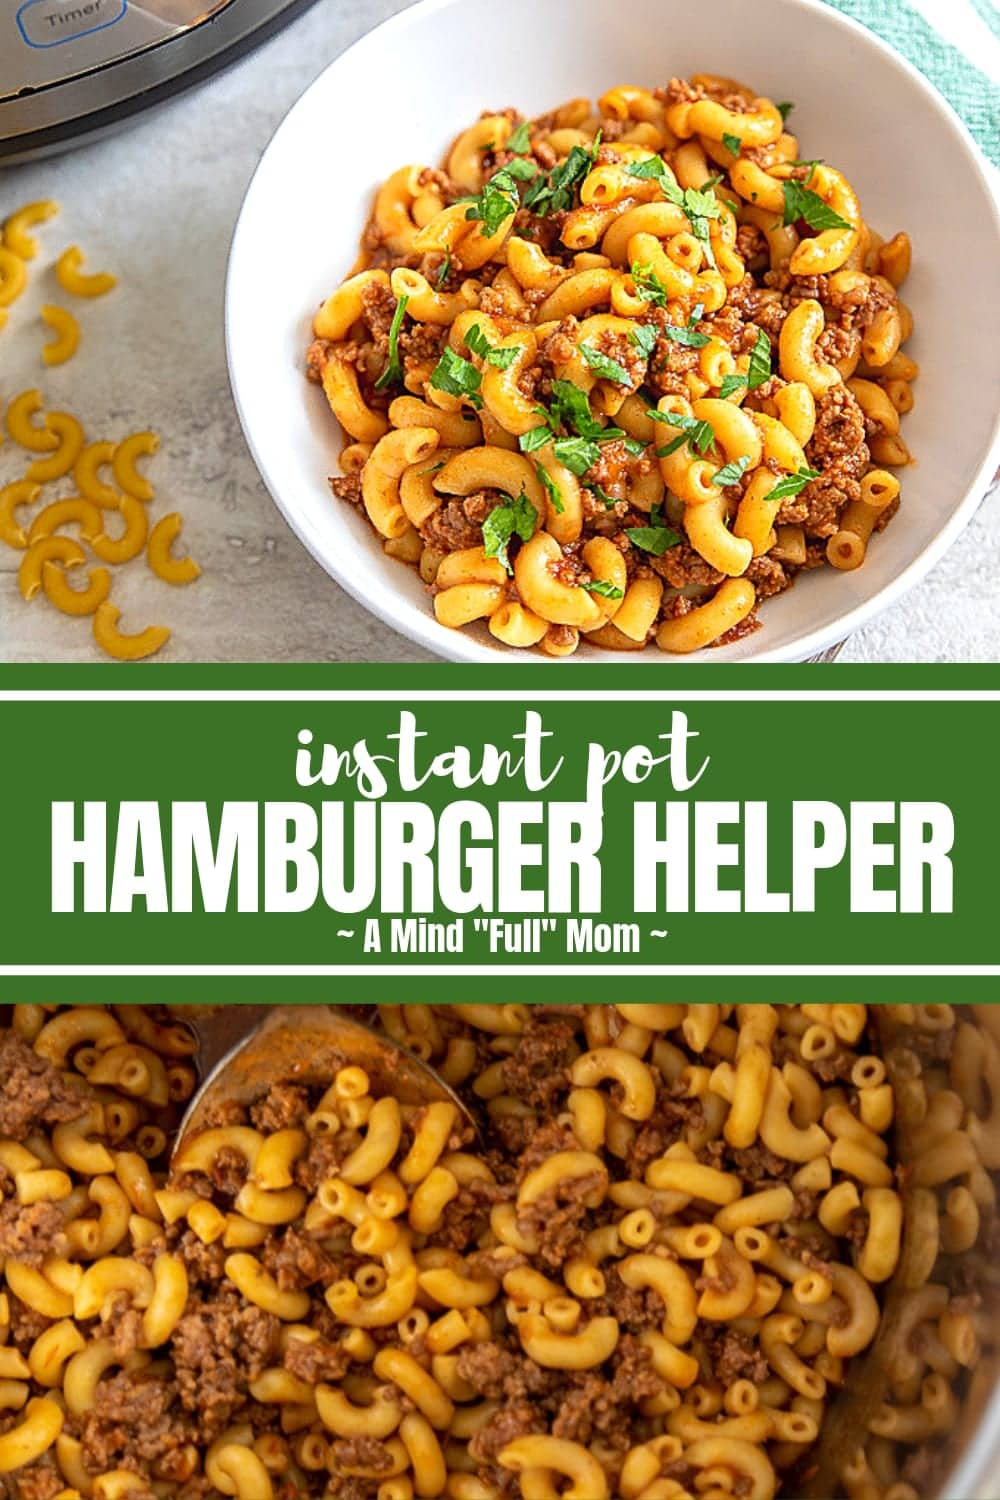 Instant Pot Hamburger Helper is sure to become a family favorite! This easy version of Hamburger Helper, or American Goulash, is ready in less than 30 minutes from start to finish and made entirely in the pressure cooker.